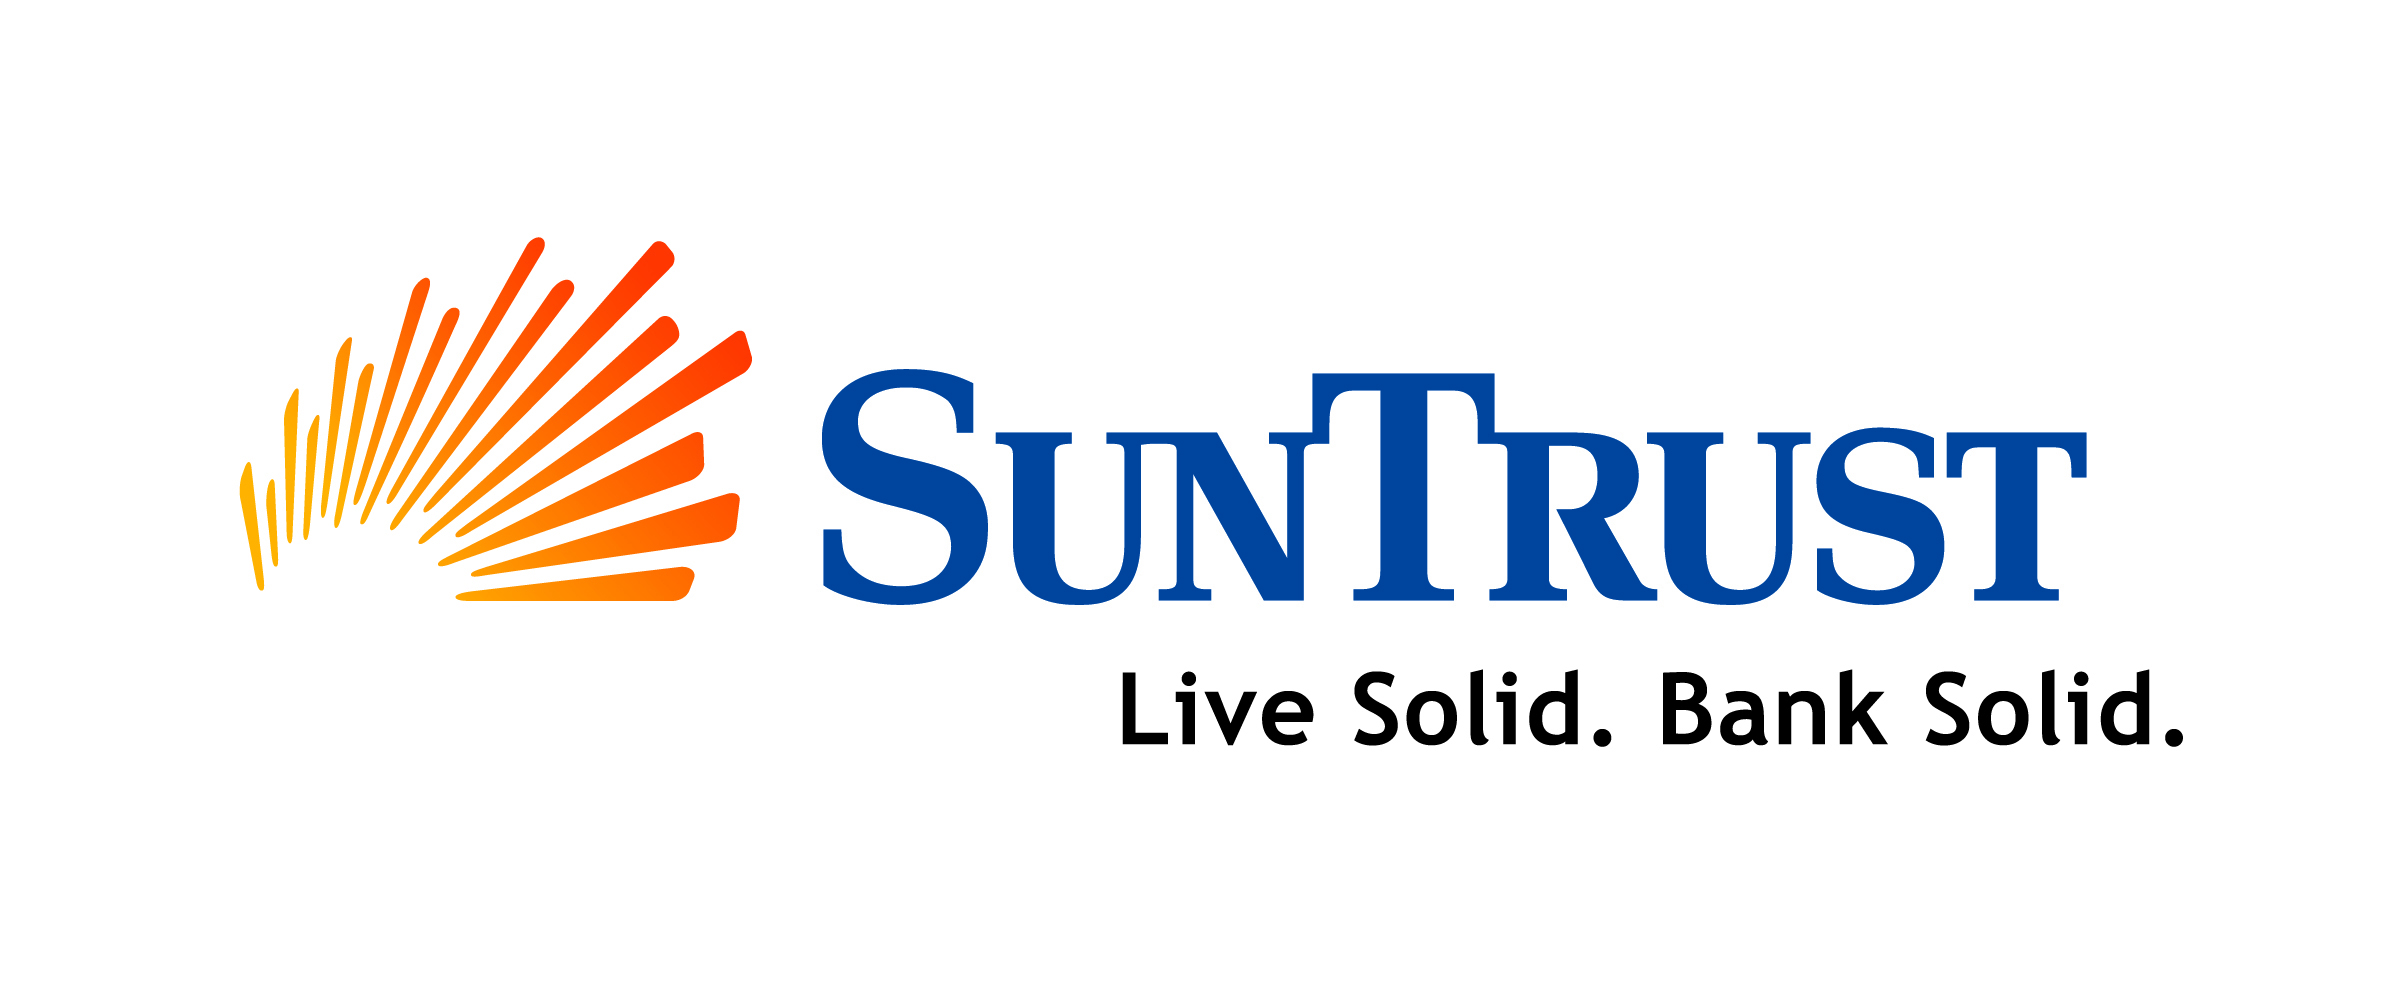 What to Do When You Can't Pay Your Suntrust Bill